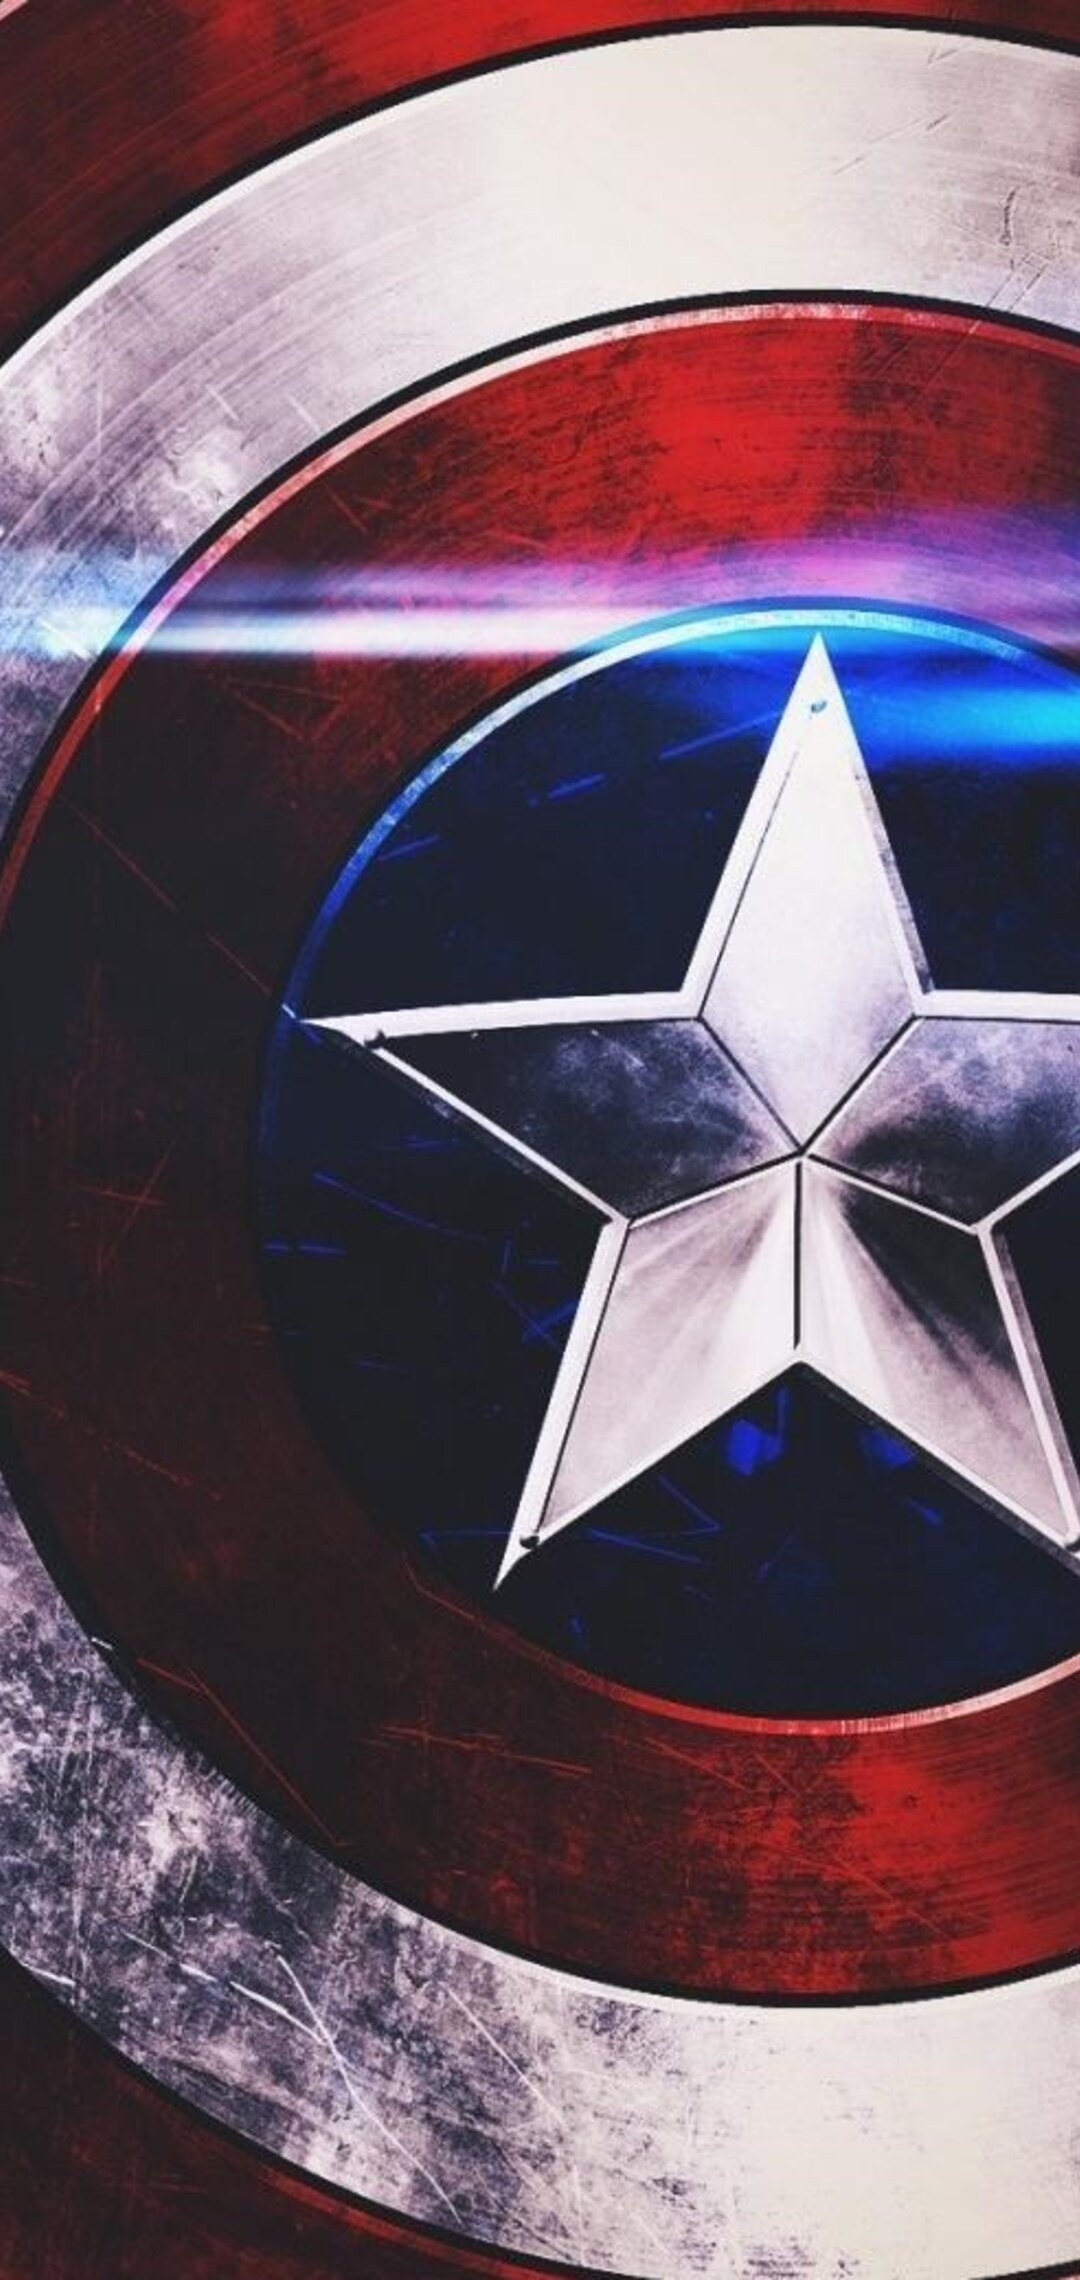 1080x2280 Captain America Shield One Plus 6 Huawei P20 Honor View 10